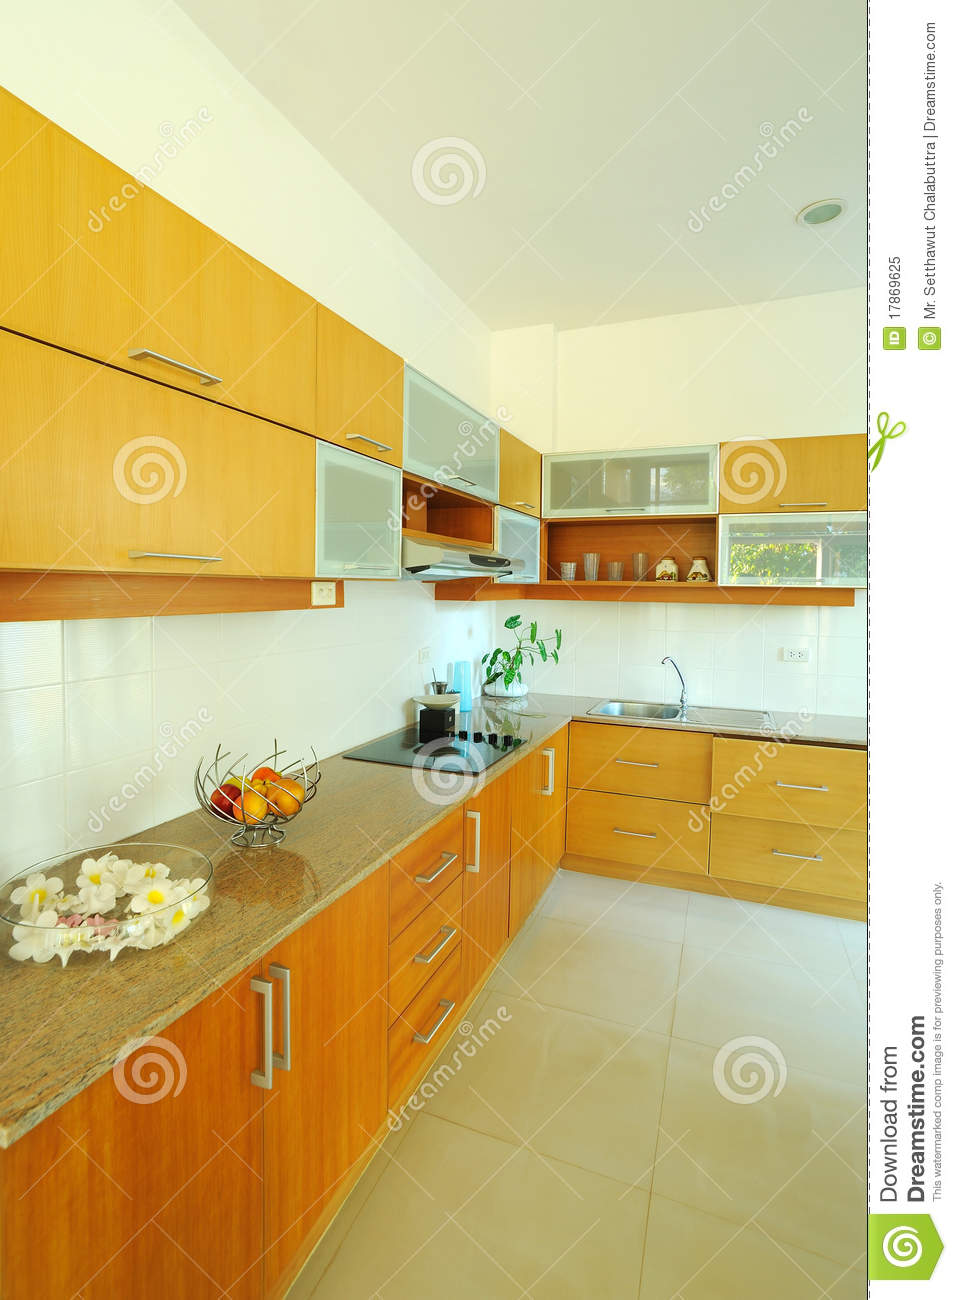 ing up with a great kitchen backsplash design by buying an elegant